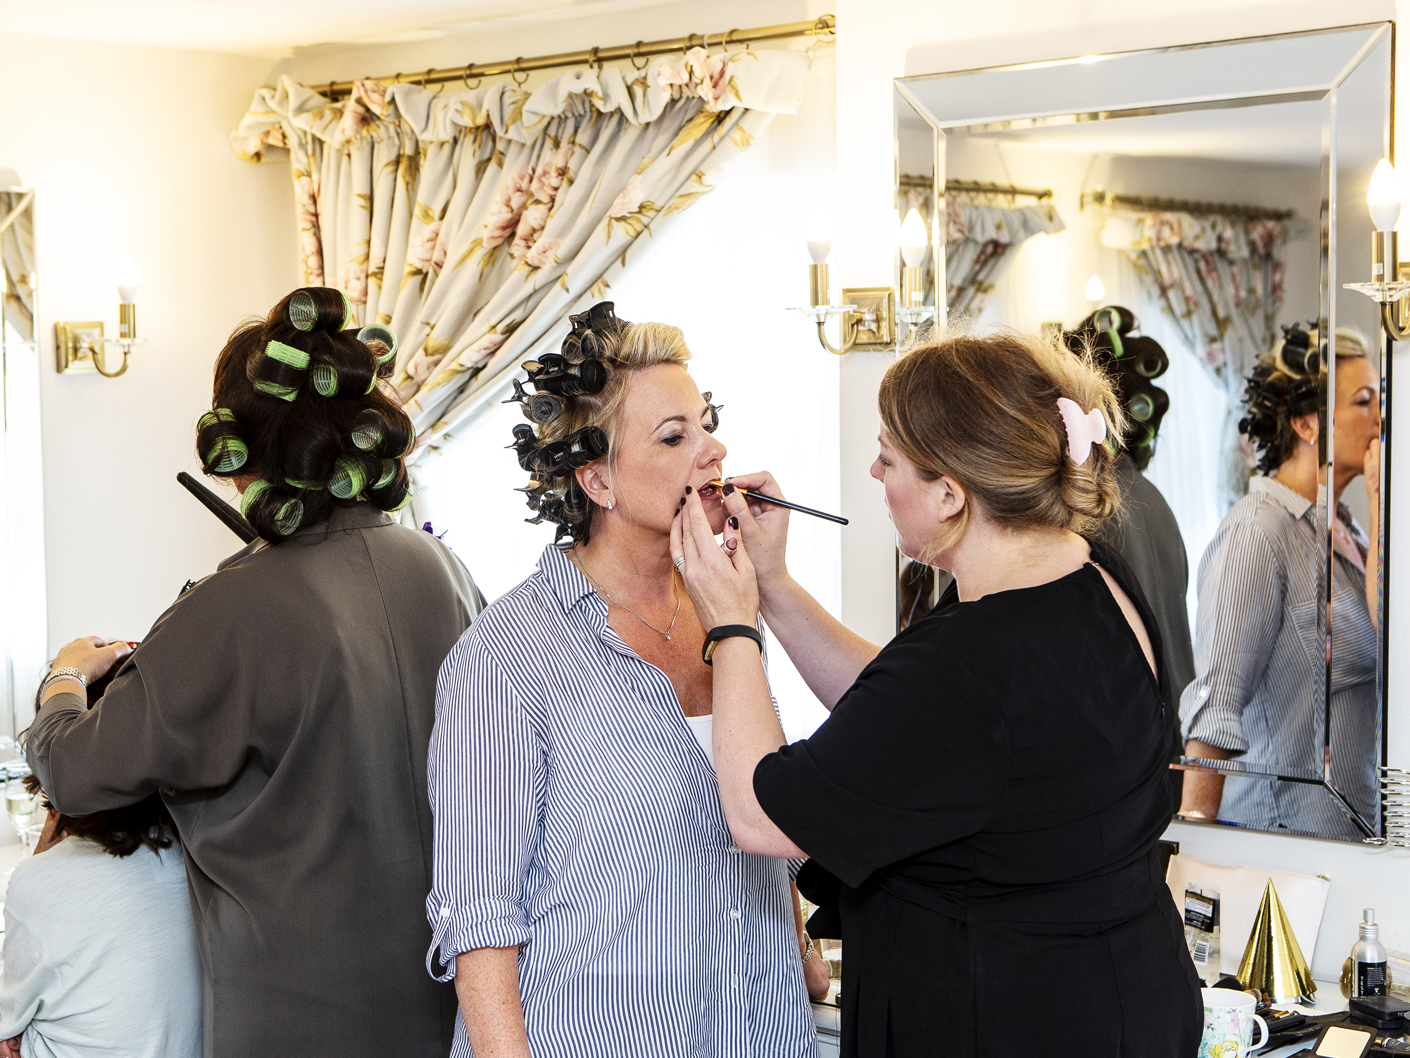 photography-of-the-bride-getting-ready-for-the-wedding-ceremony-at-Sandhole-Oak-Barn-Cheshire